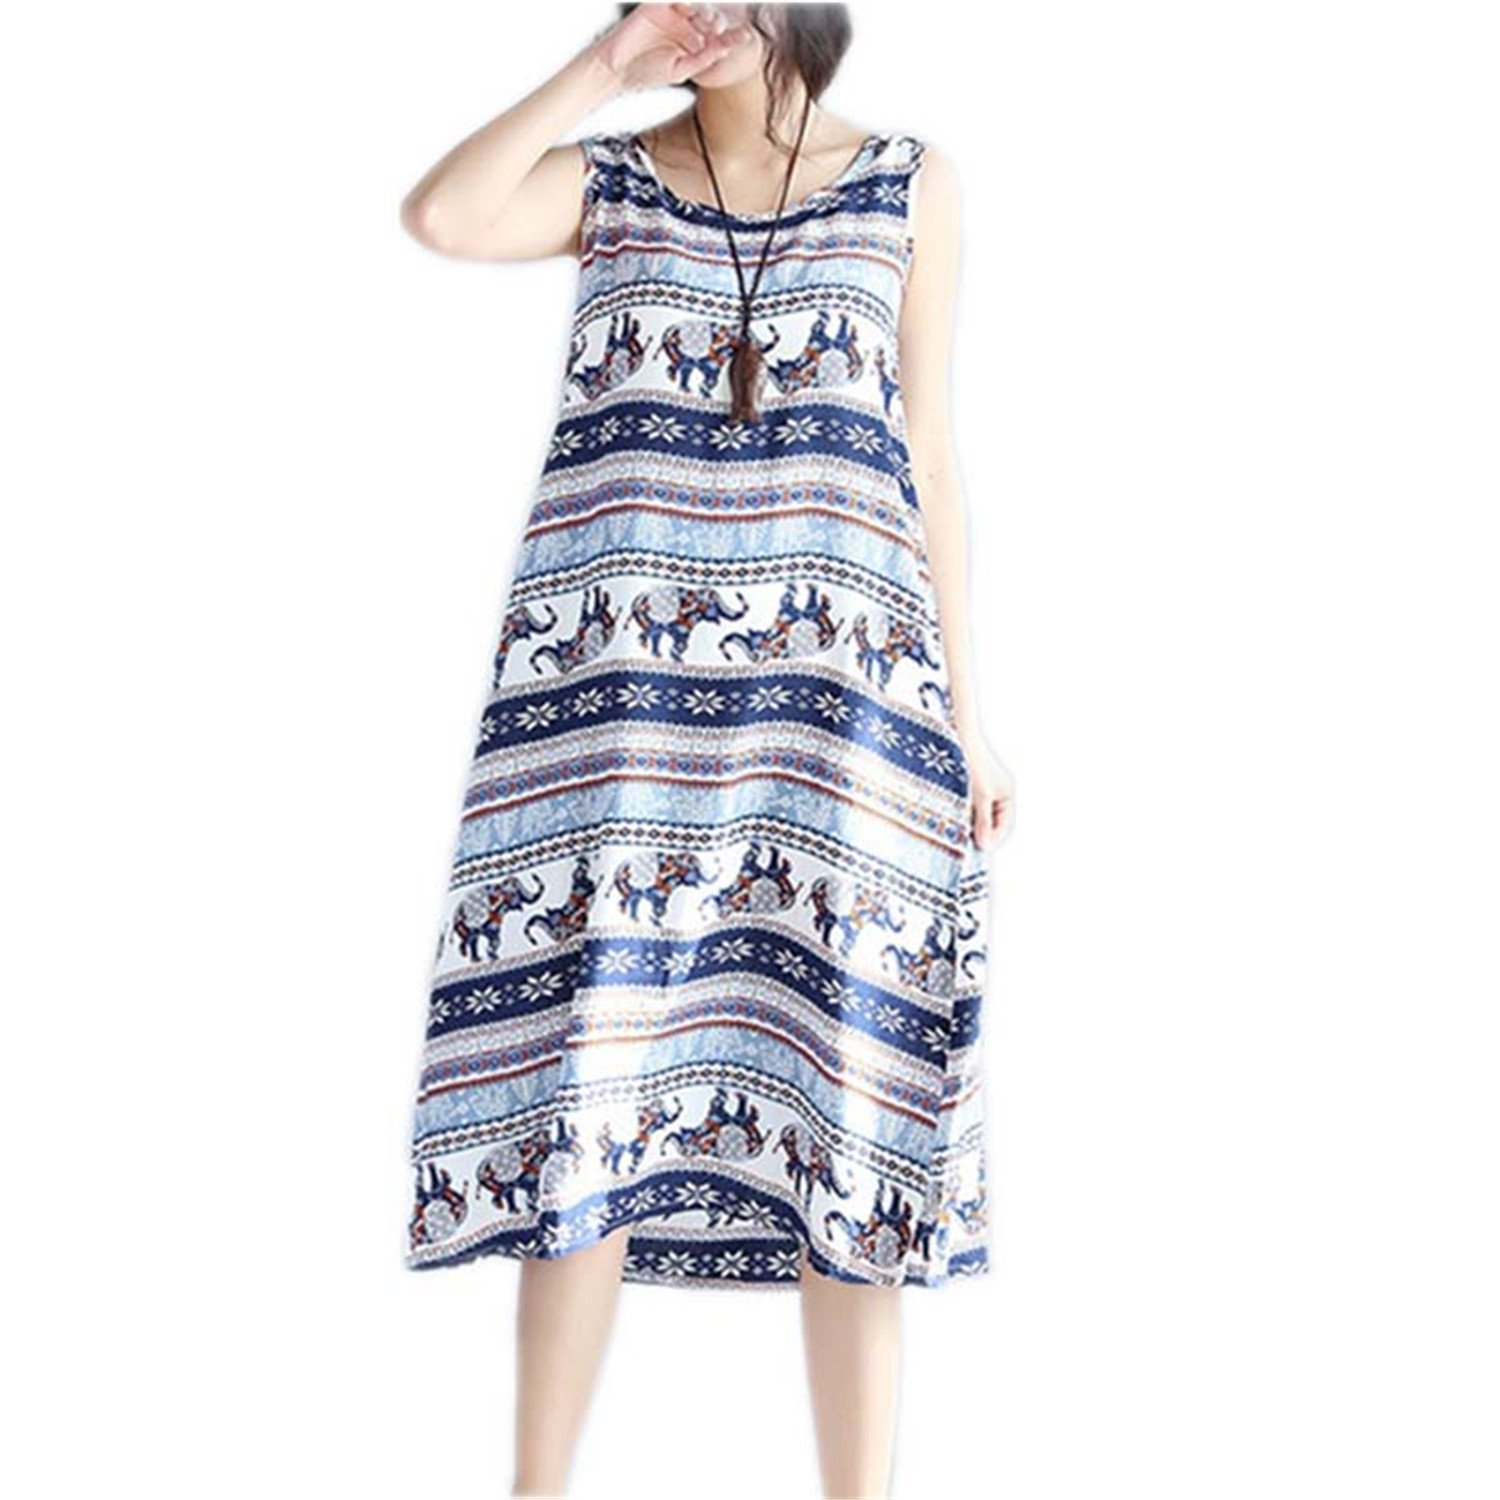 Amazon.com: WalterTi Fashion vintage print women casual summer dress vestidos femininos party dresses: Clothing